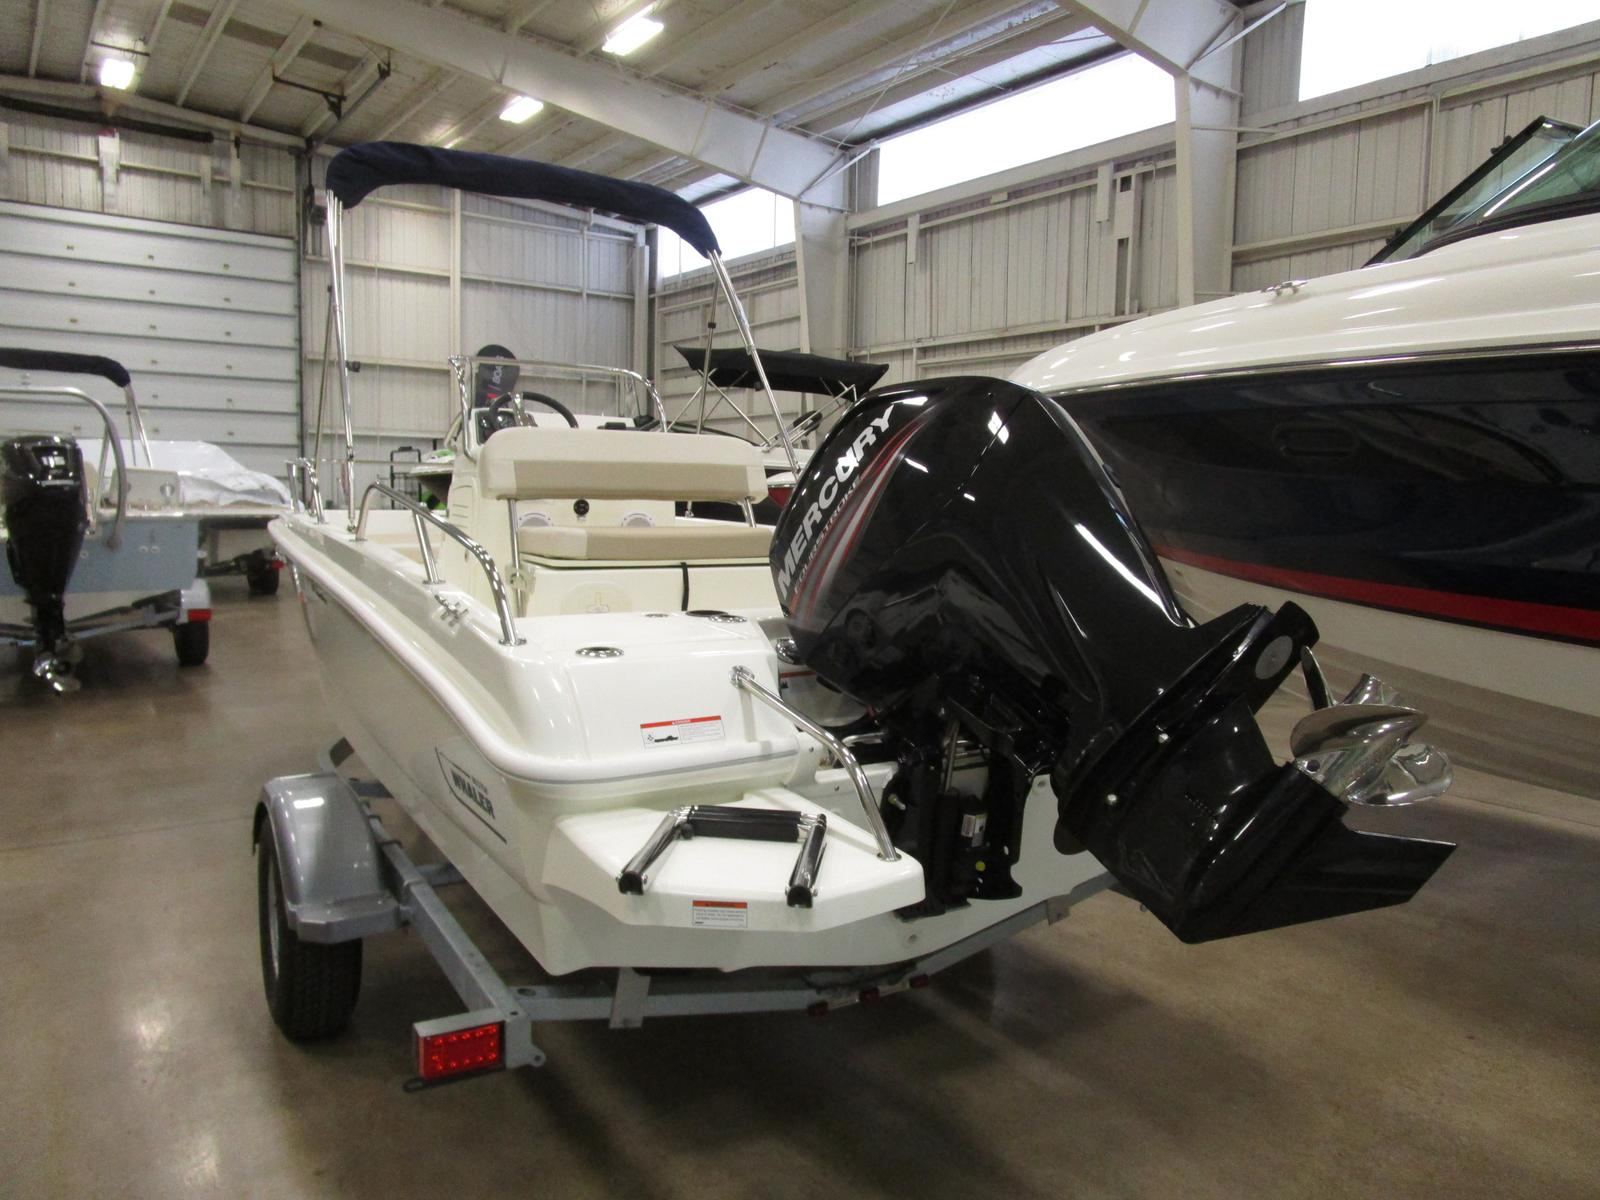 2019 Boston Whaler boat for sale, model of the boat is 170 Dauntless & Image # 2 of 5